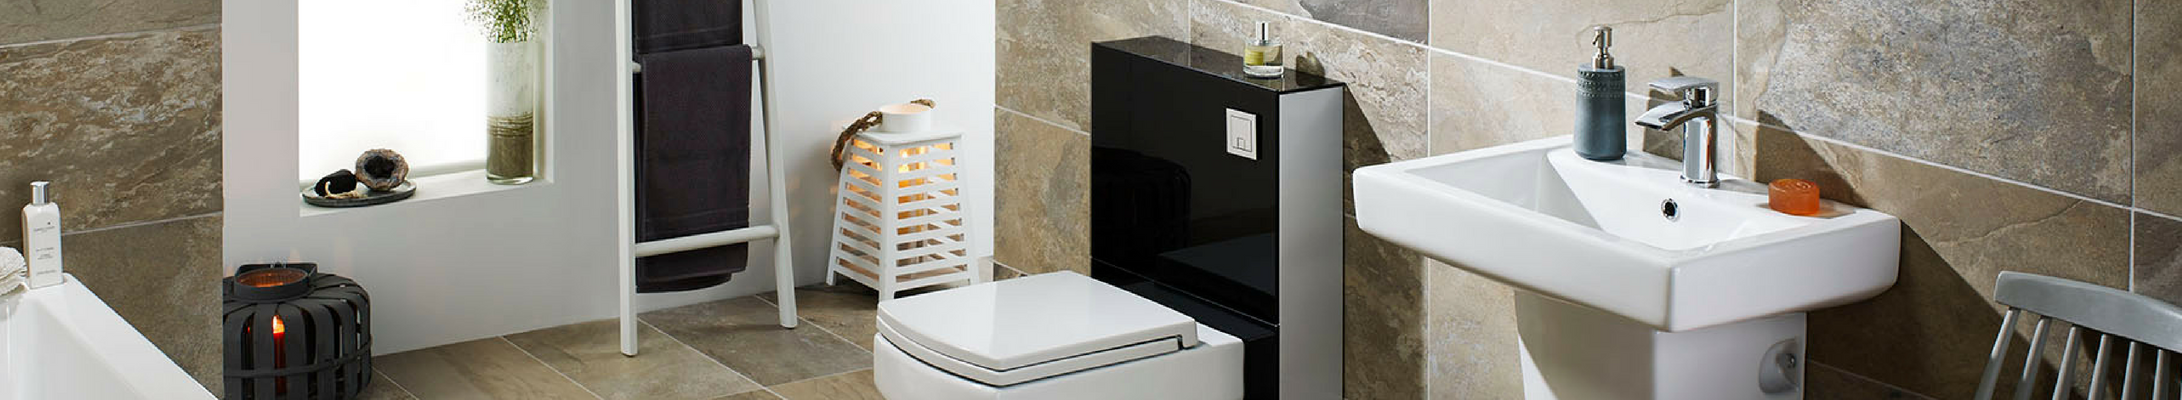 Galashiels Bathroom Showroom